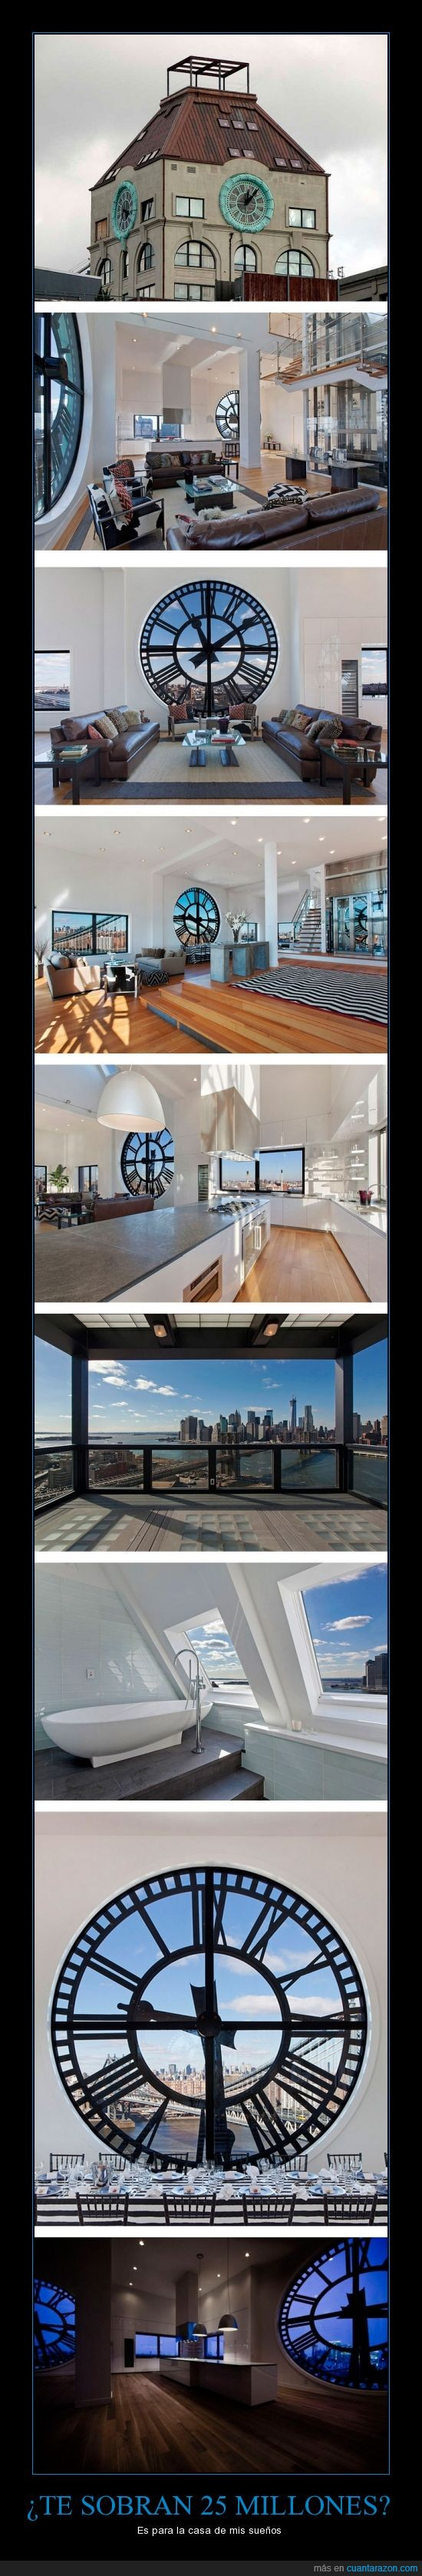 Andy Roddick,brooklyn,brutal,casa del reloj,dumbo,nueva york,nyc,puente de brooklyn